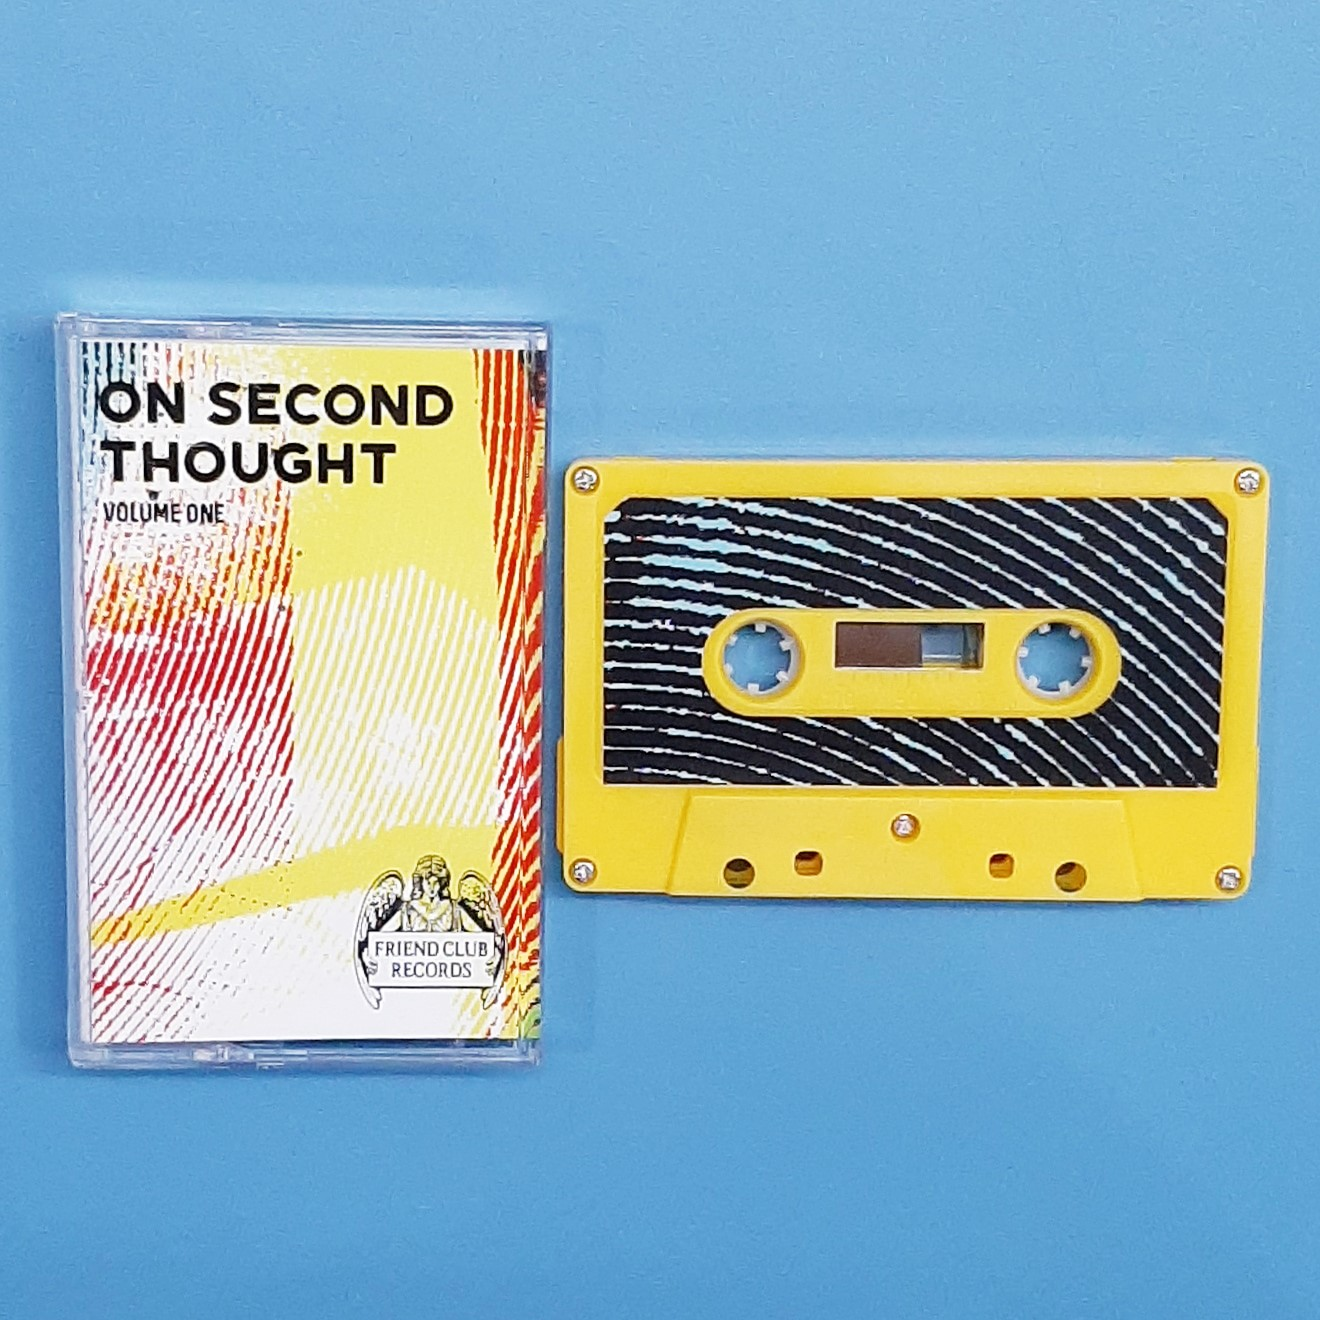 On Second Thought Vol. 1 (Friend Club Records)